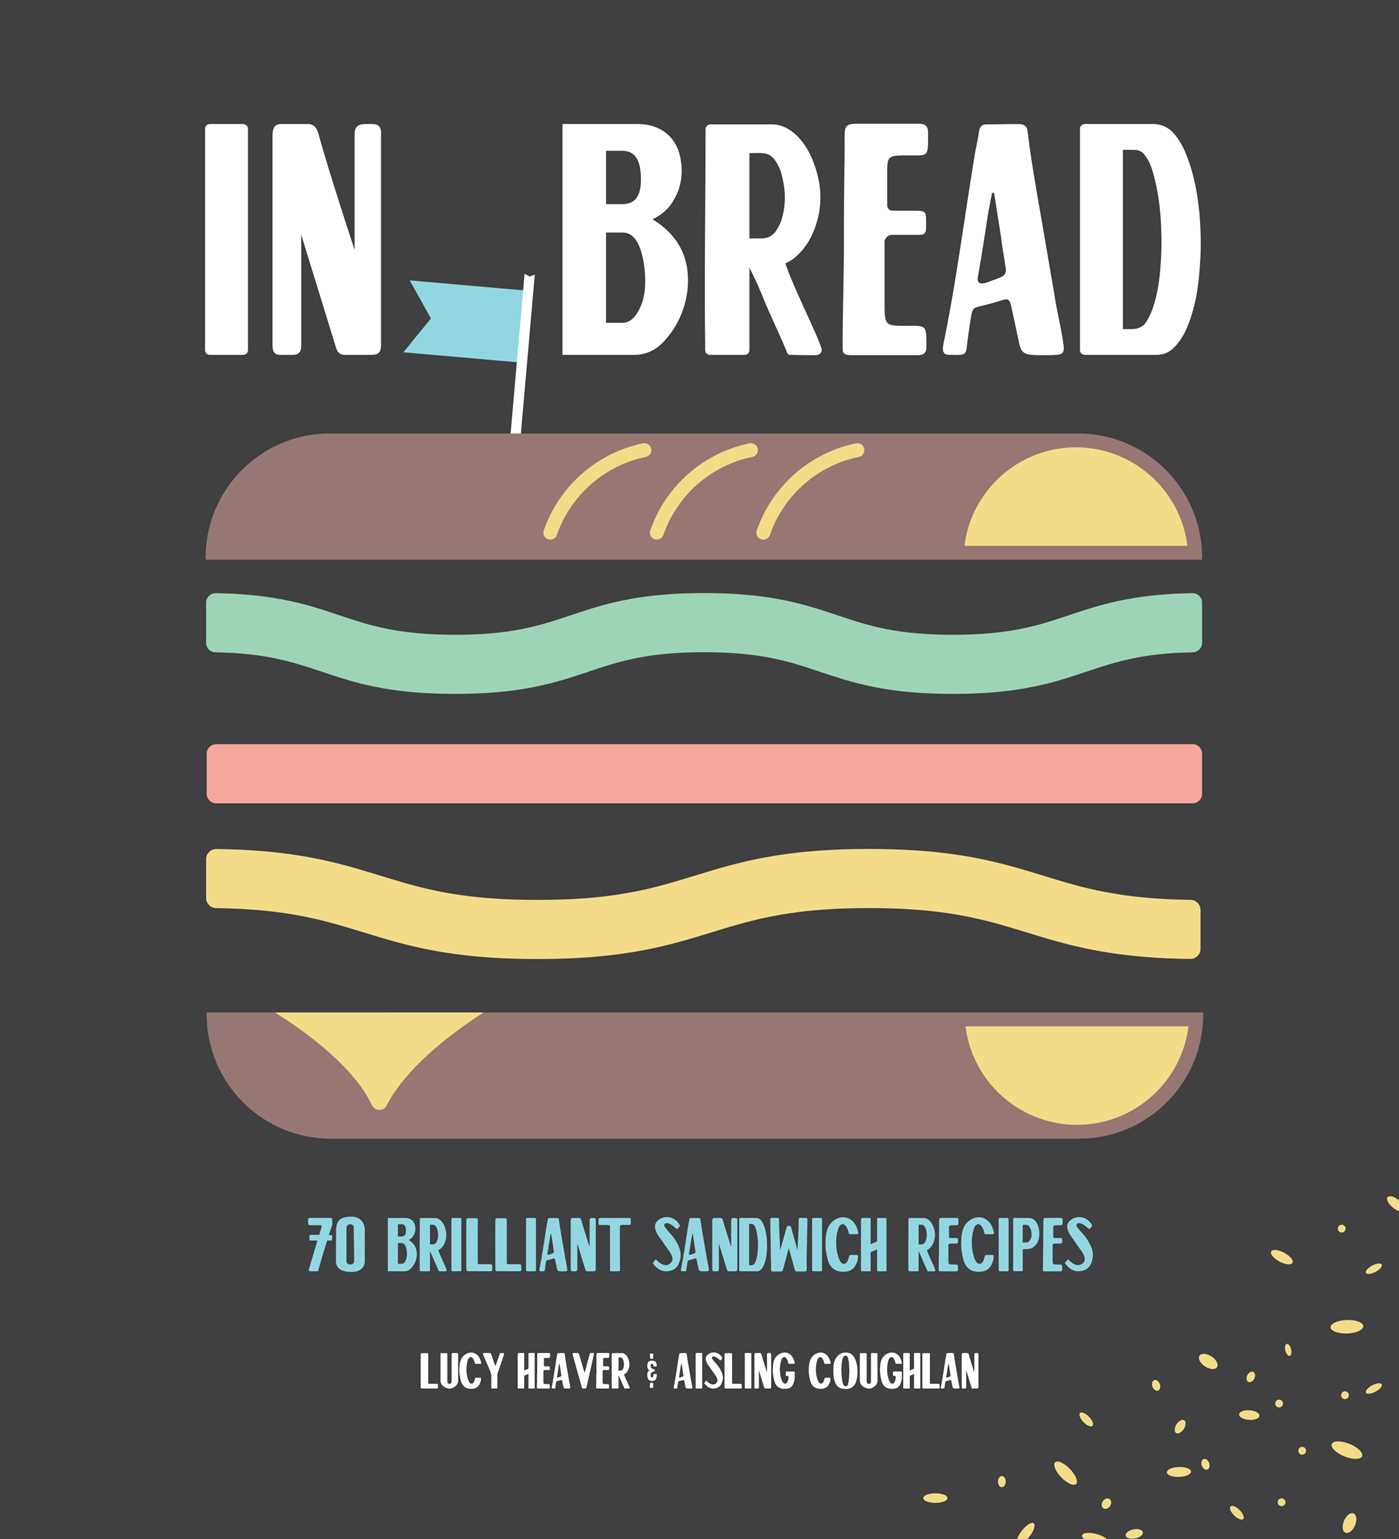 In bread a celebration of the mighty sandwich 9781925418286 hr